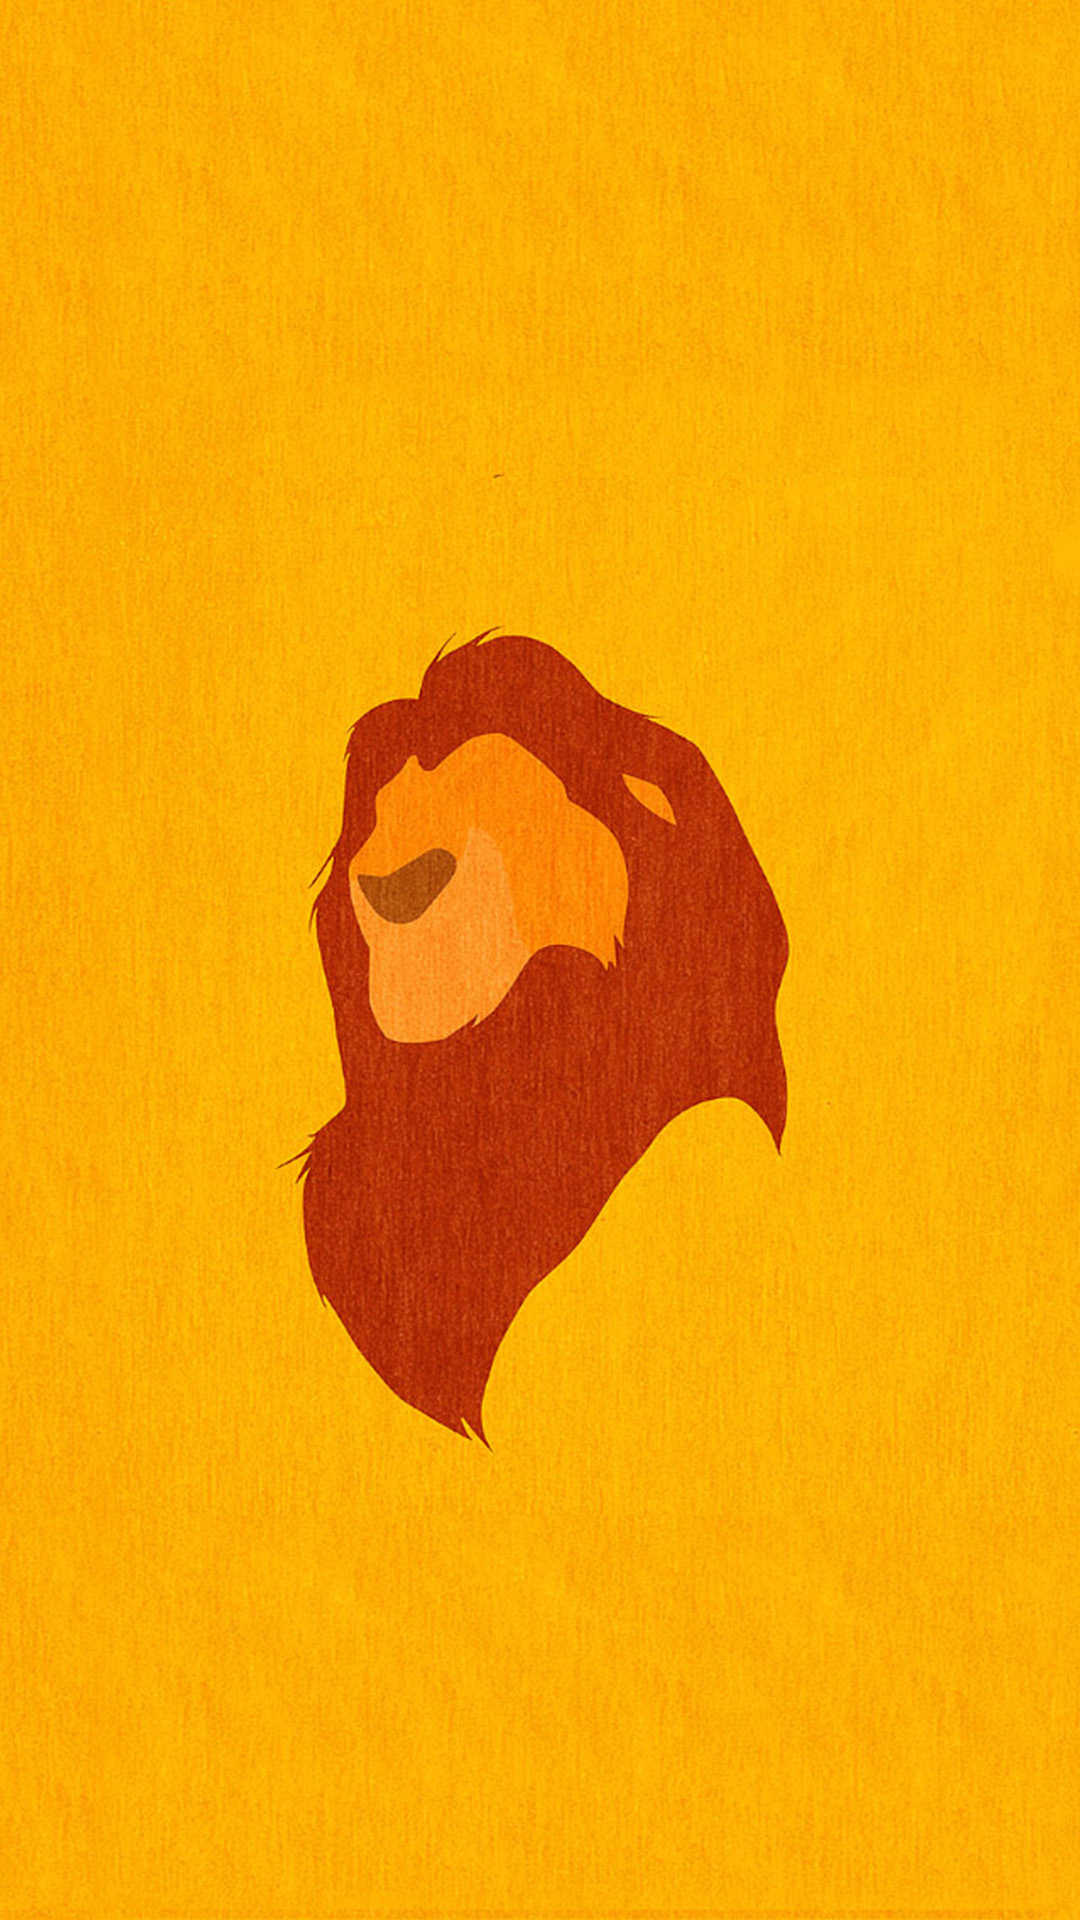 Lion King Iphone Wallpaper